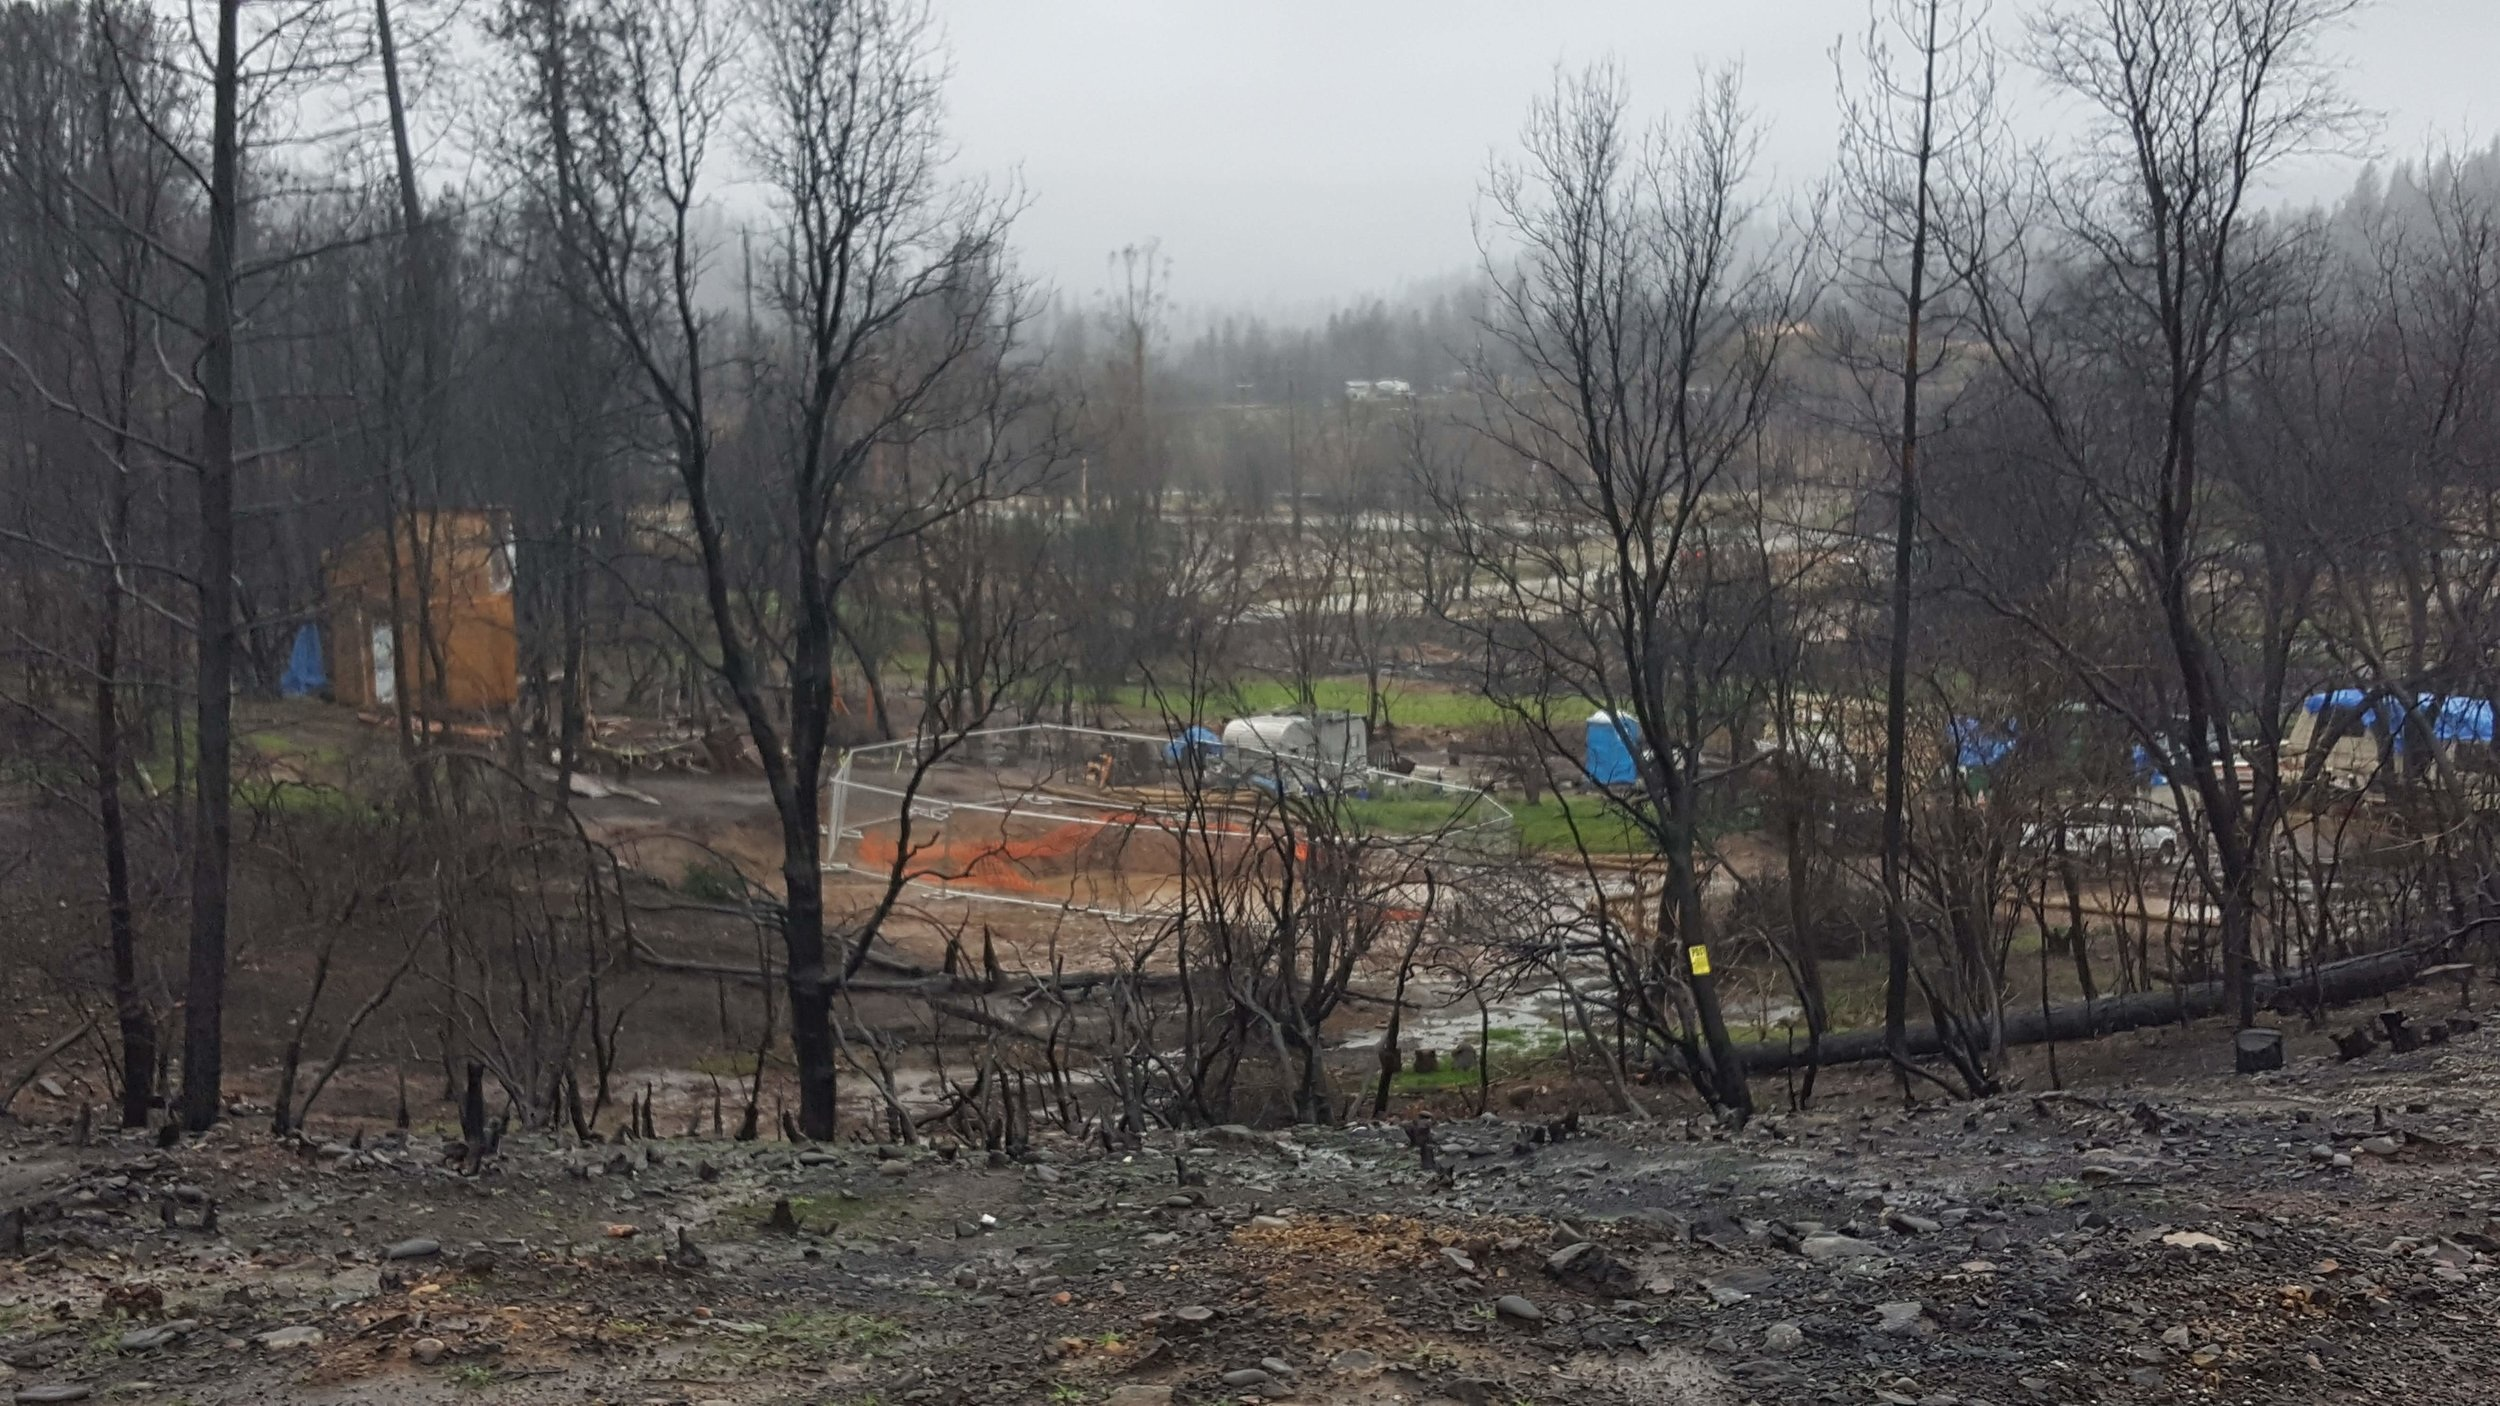 In the footprint of a home destroyed by the Carr Fire near Redding, CA, recent rains have brought new growth, green against the ashes and the blackened trees.  Photo Credit: Disciples Volunteering